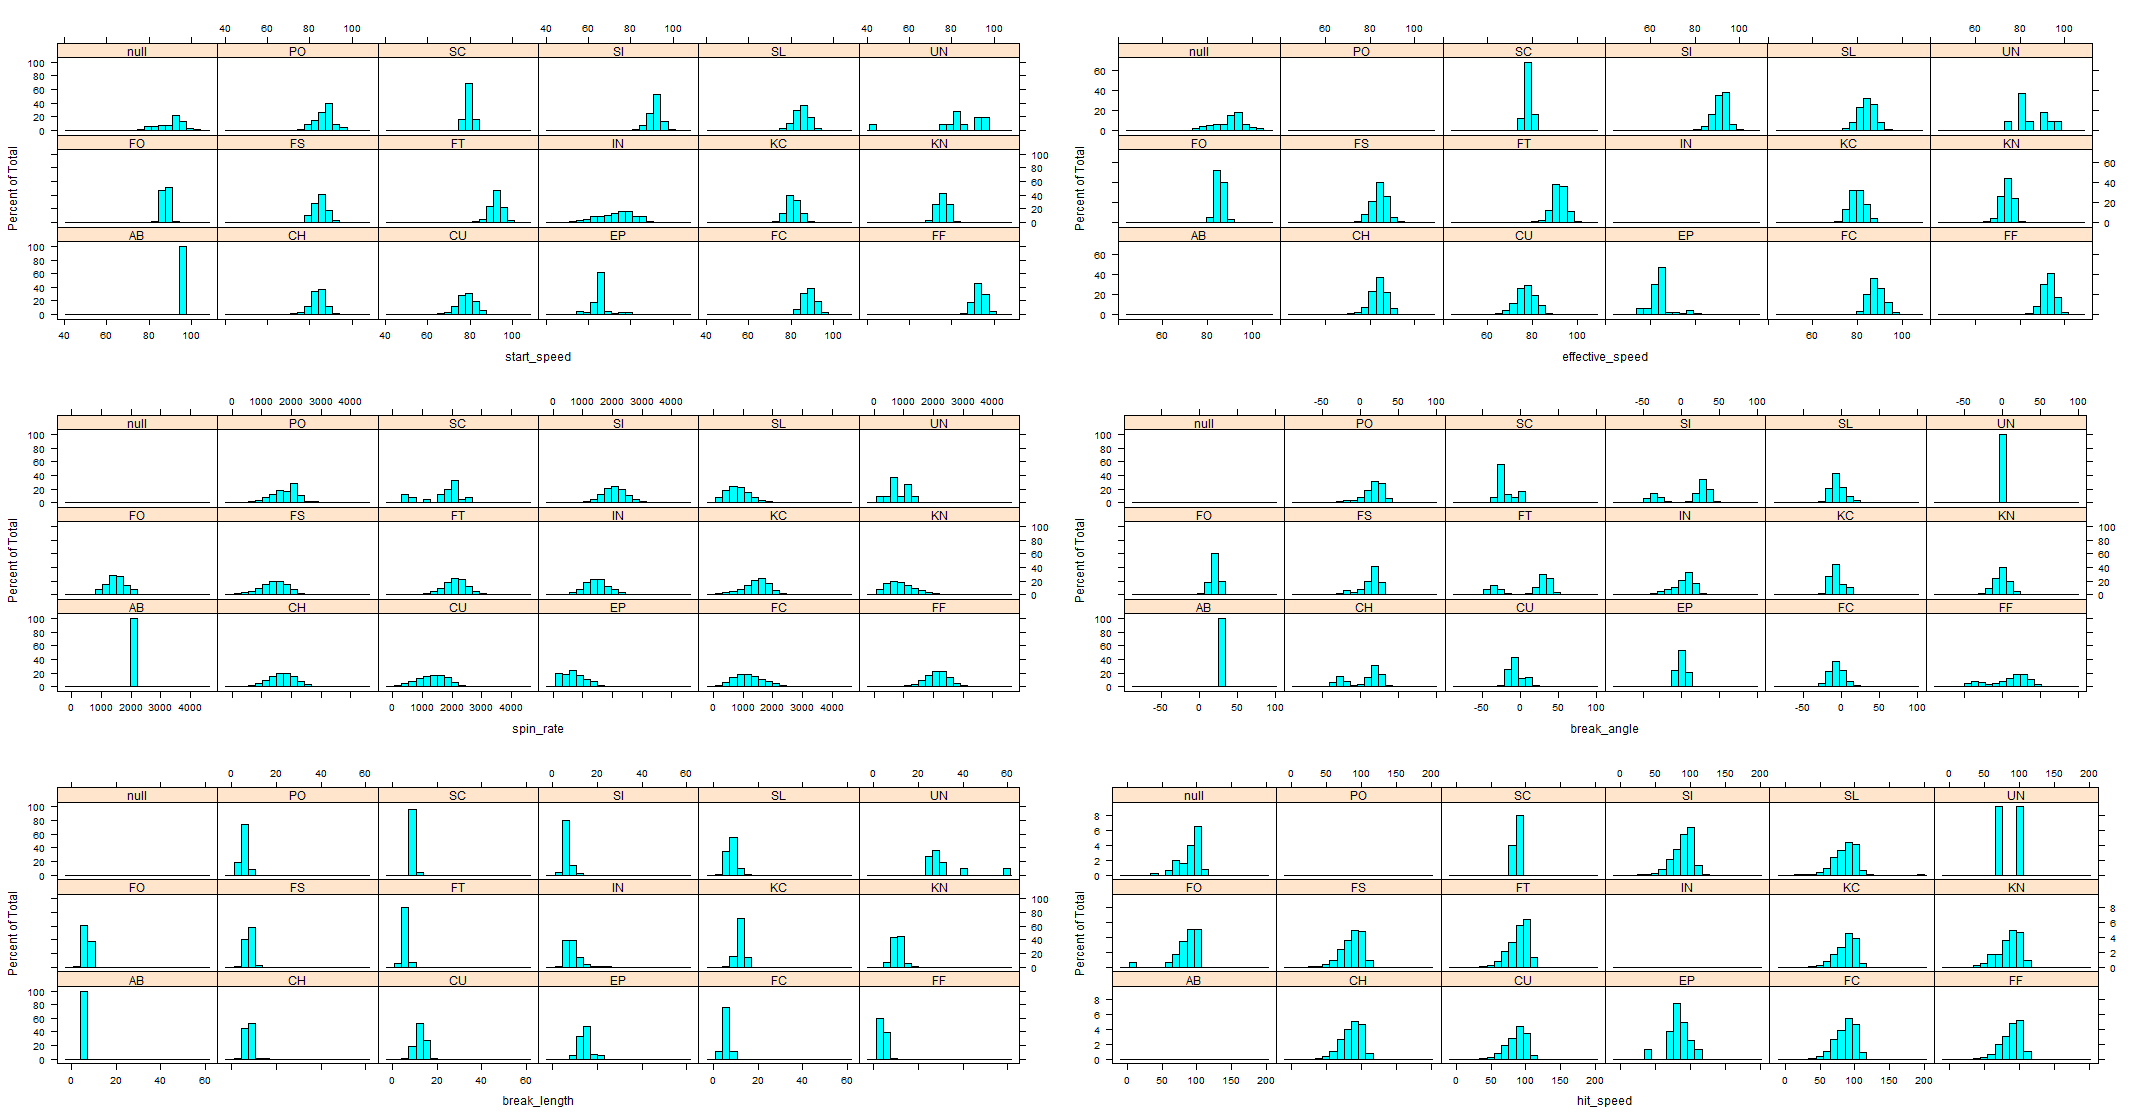 Figure 3: Histograms by pitch type (click to enlarge)